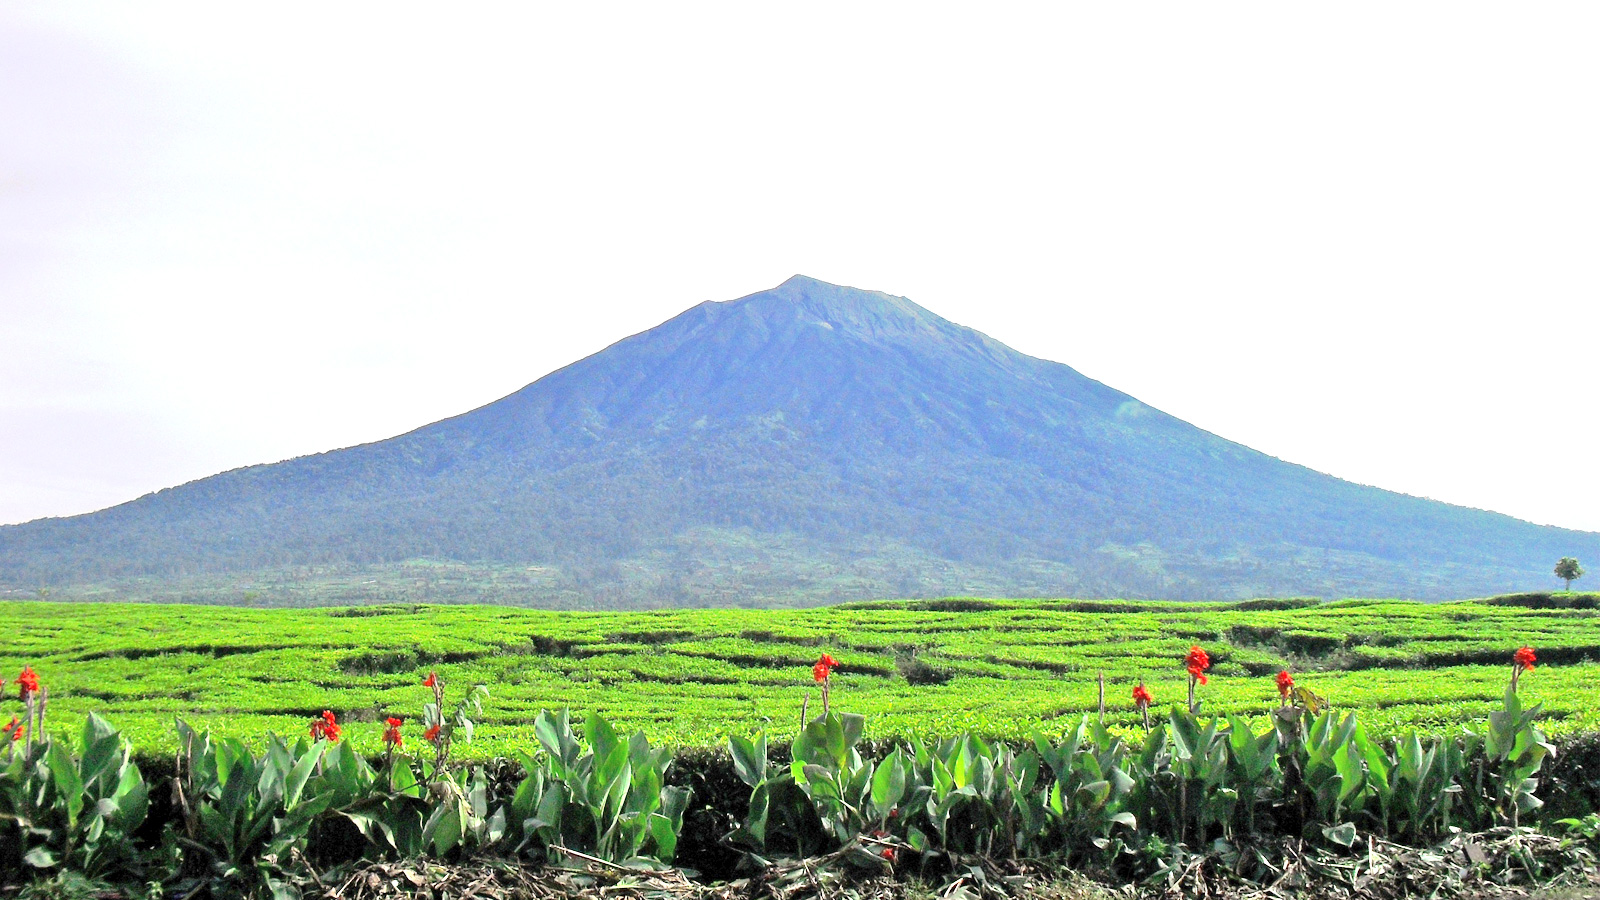 Mount Kerinci Vulkan im Lake Mount Seven Nationalpark Sumatra Expeditionsreise traveljunkies